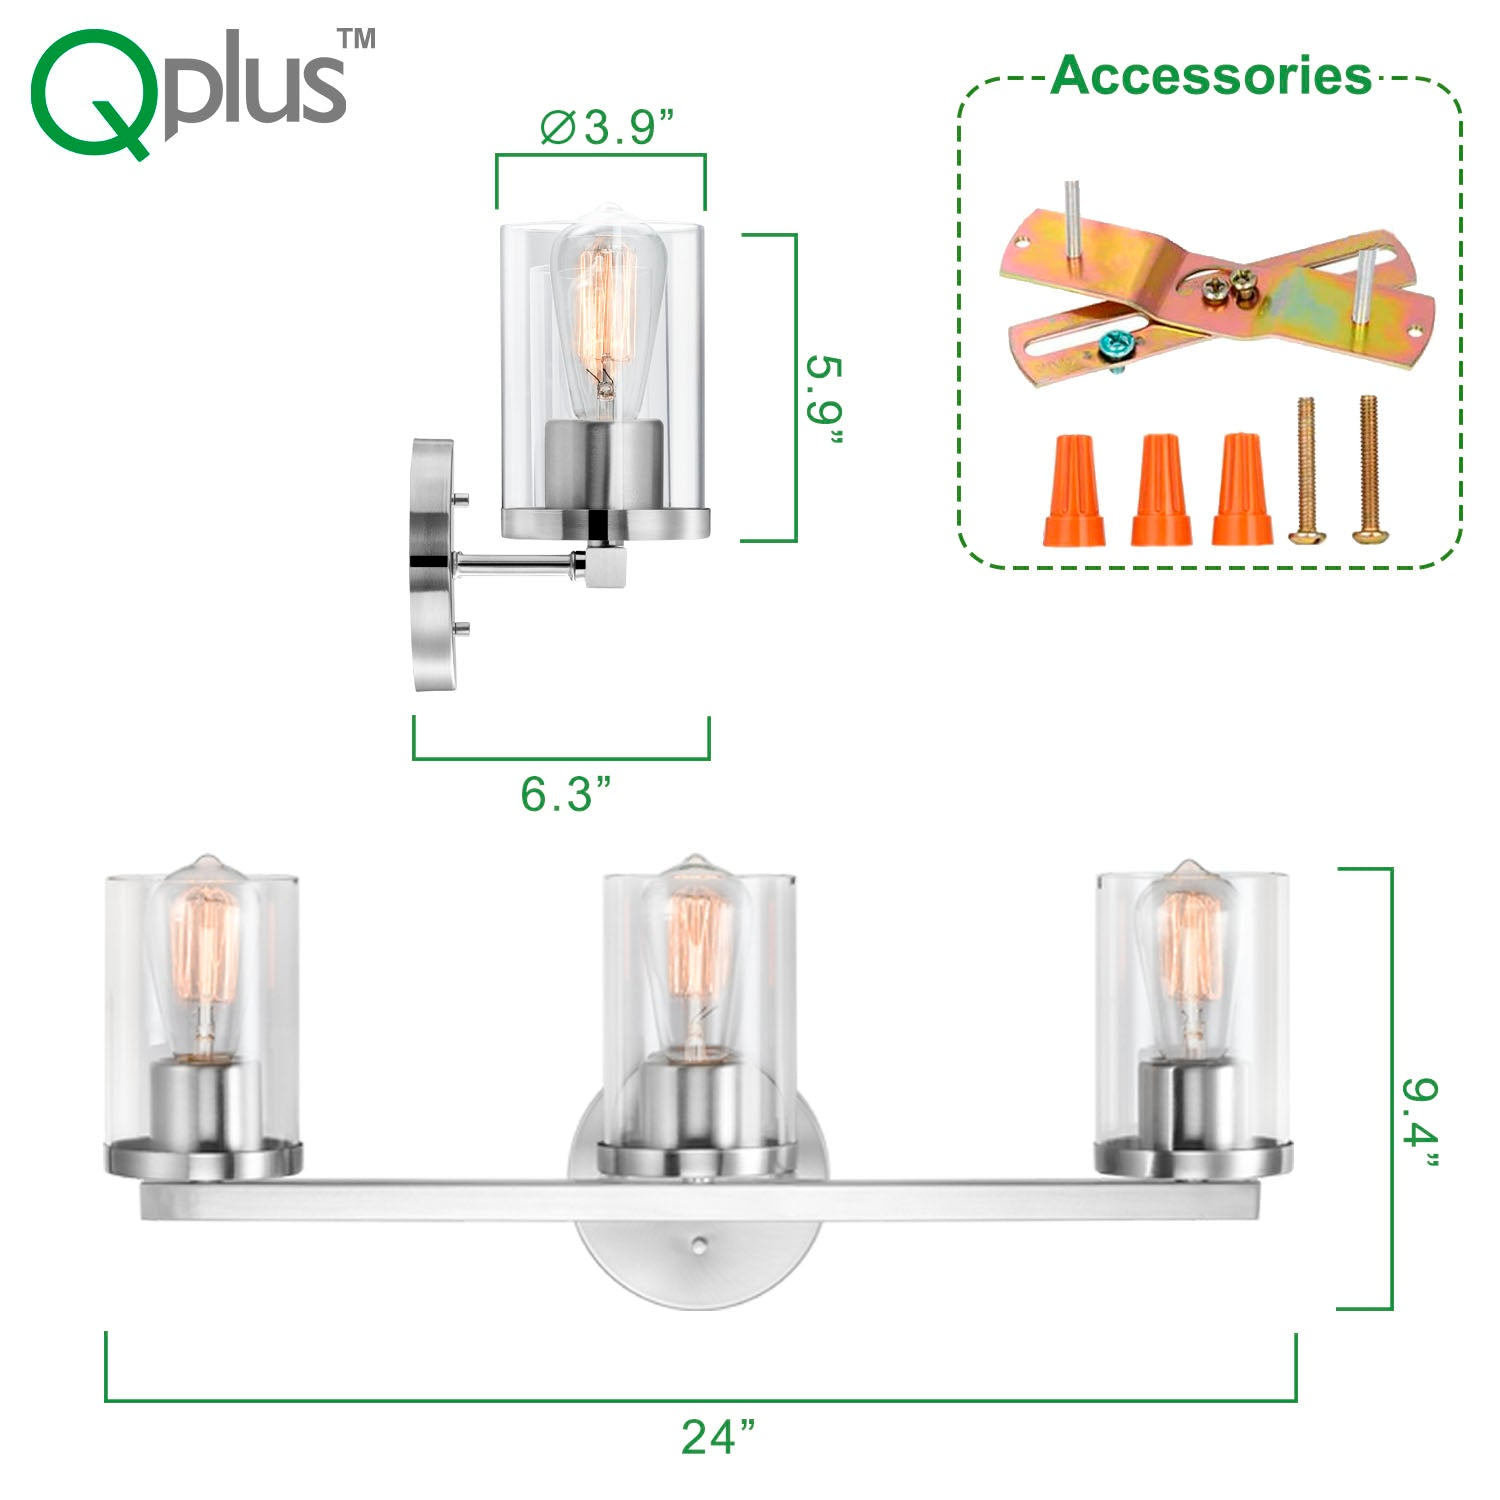 QPlus Bathroom Vanity Wall Light Fixture, 3 Lights in E26 Base & Clear Glass Sconces with Bathroom Accessories - Brush Nickel Finish